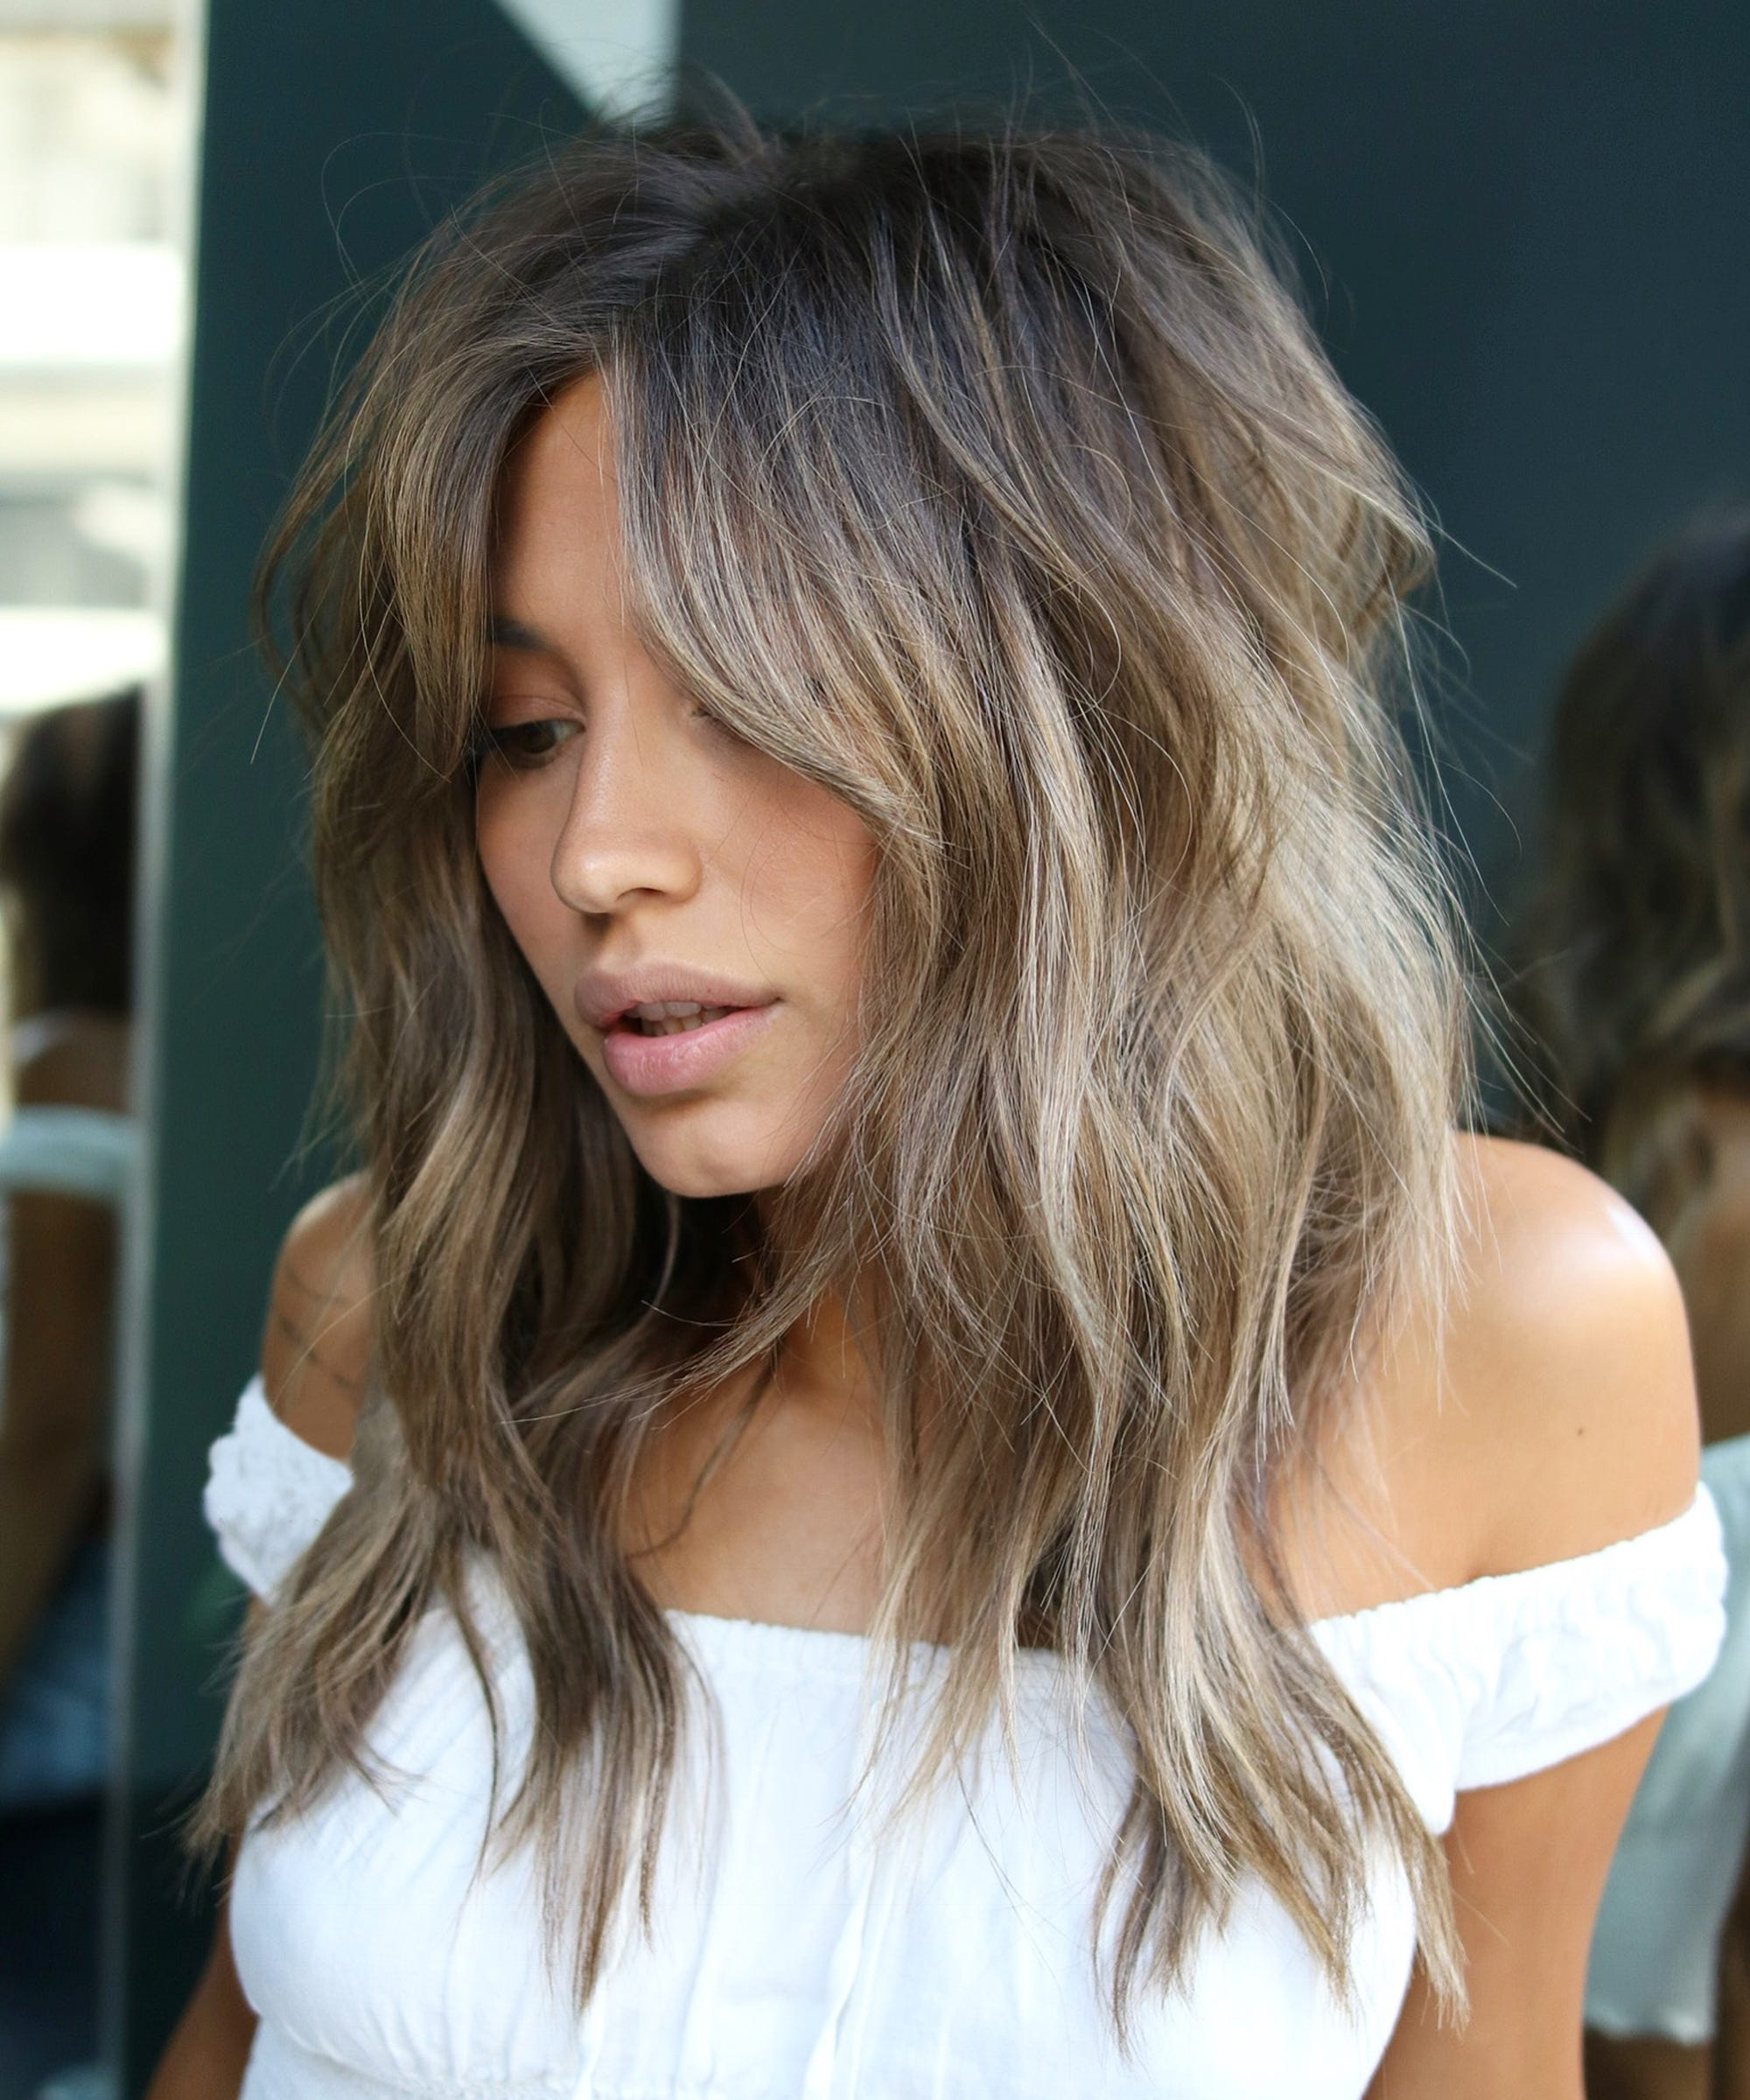 fall hair color trends & ideas for a new look in 2018